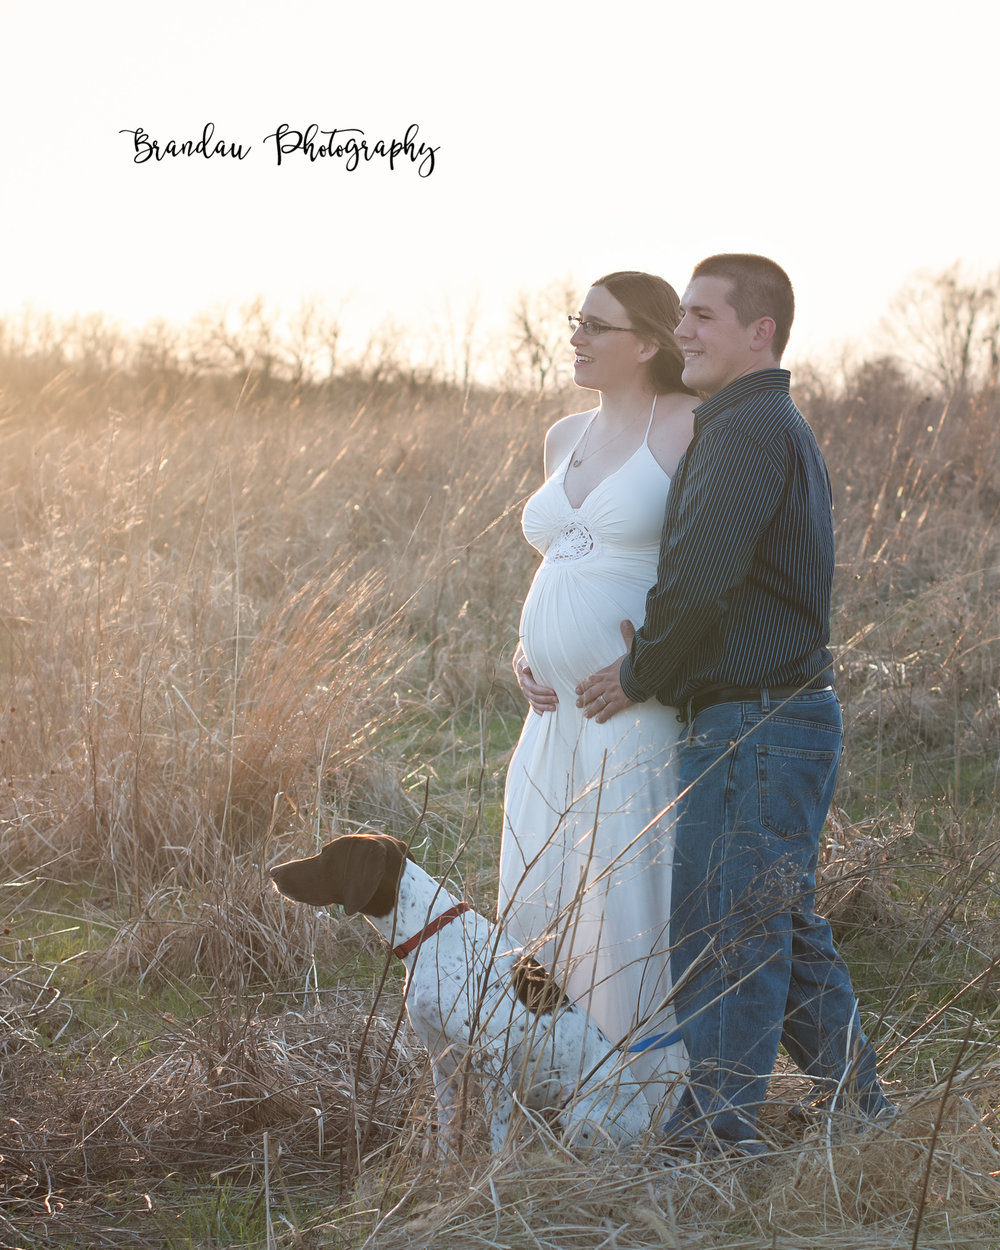 Brandau Photography - Central Iowa Maternity - Ames Iowa